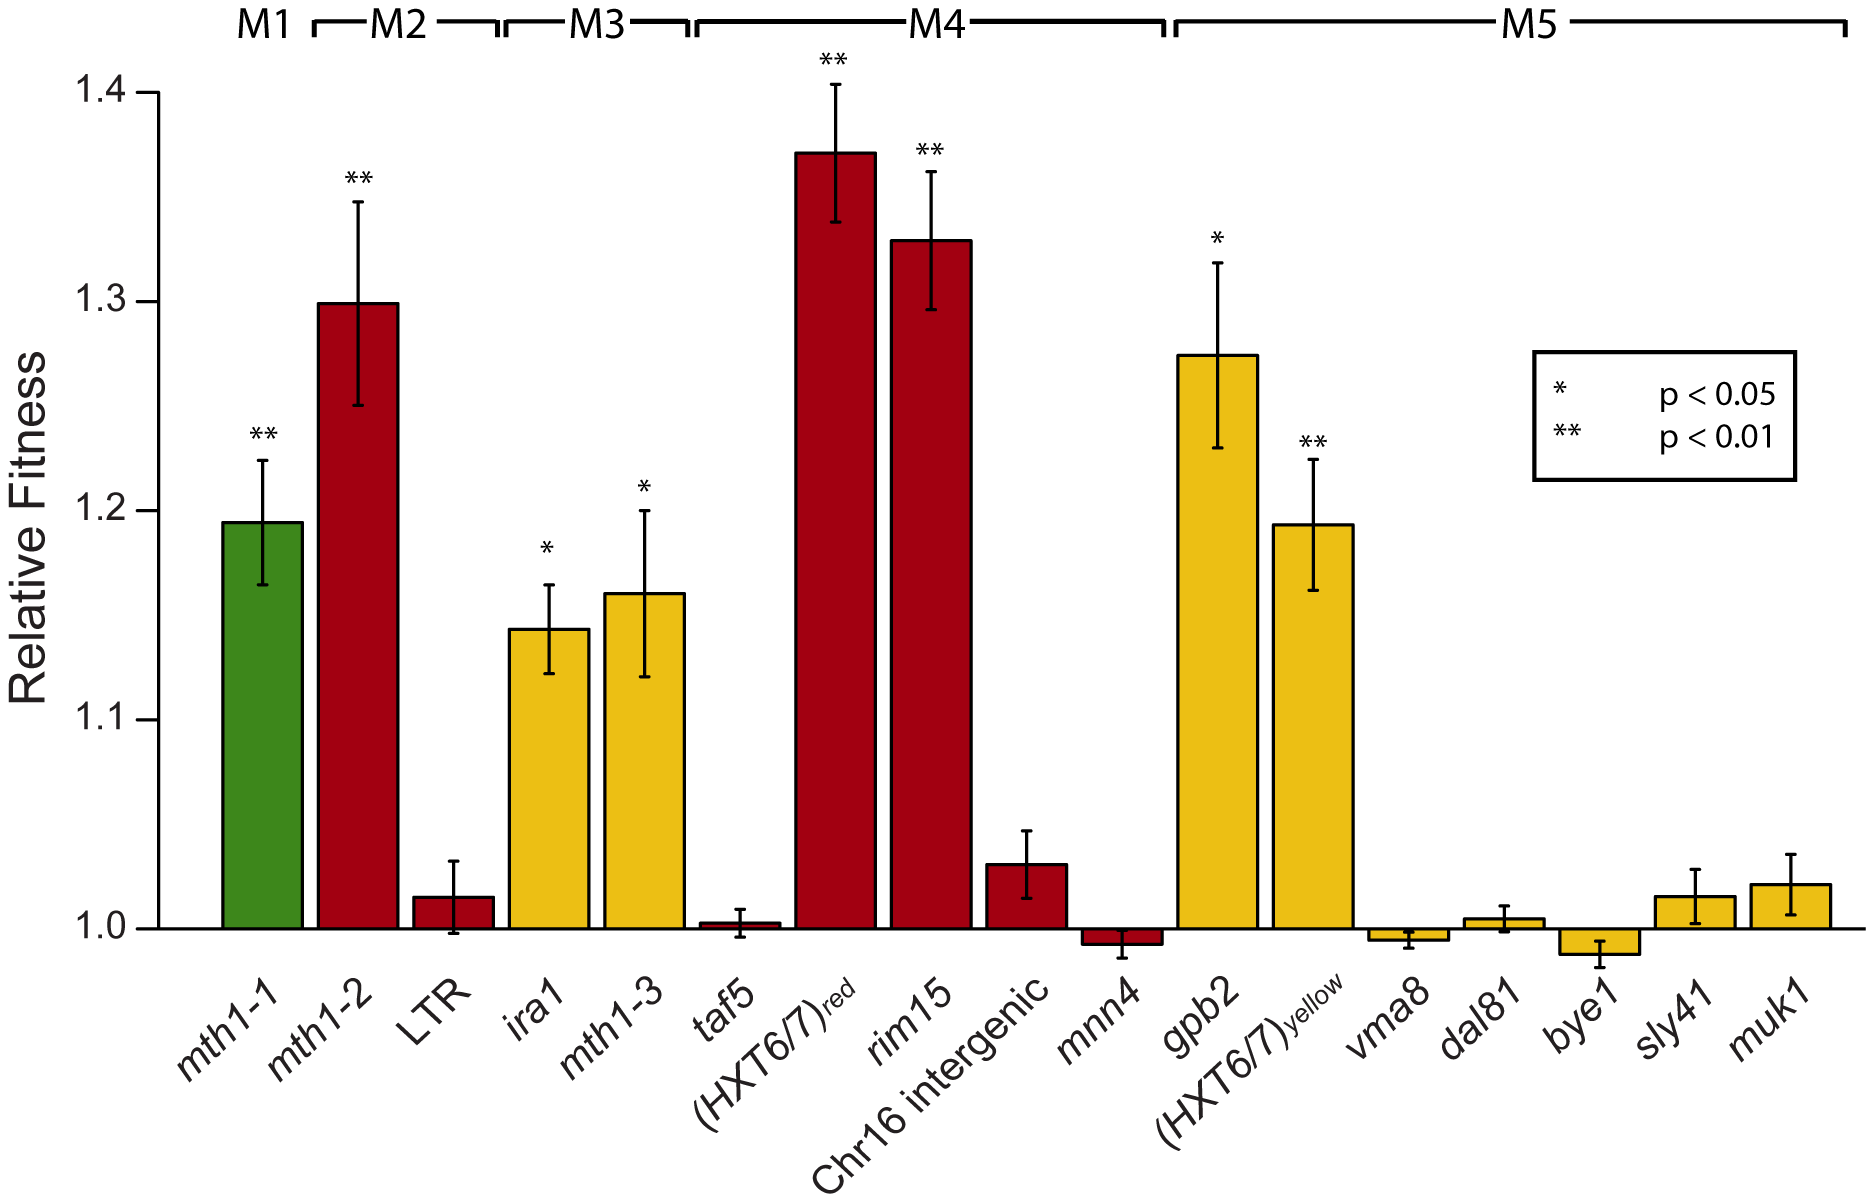 Relative fitness of individual mutations derived from competition experiments.